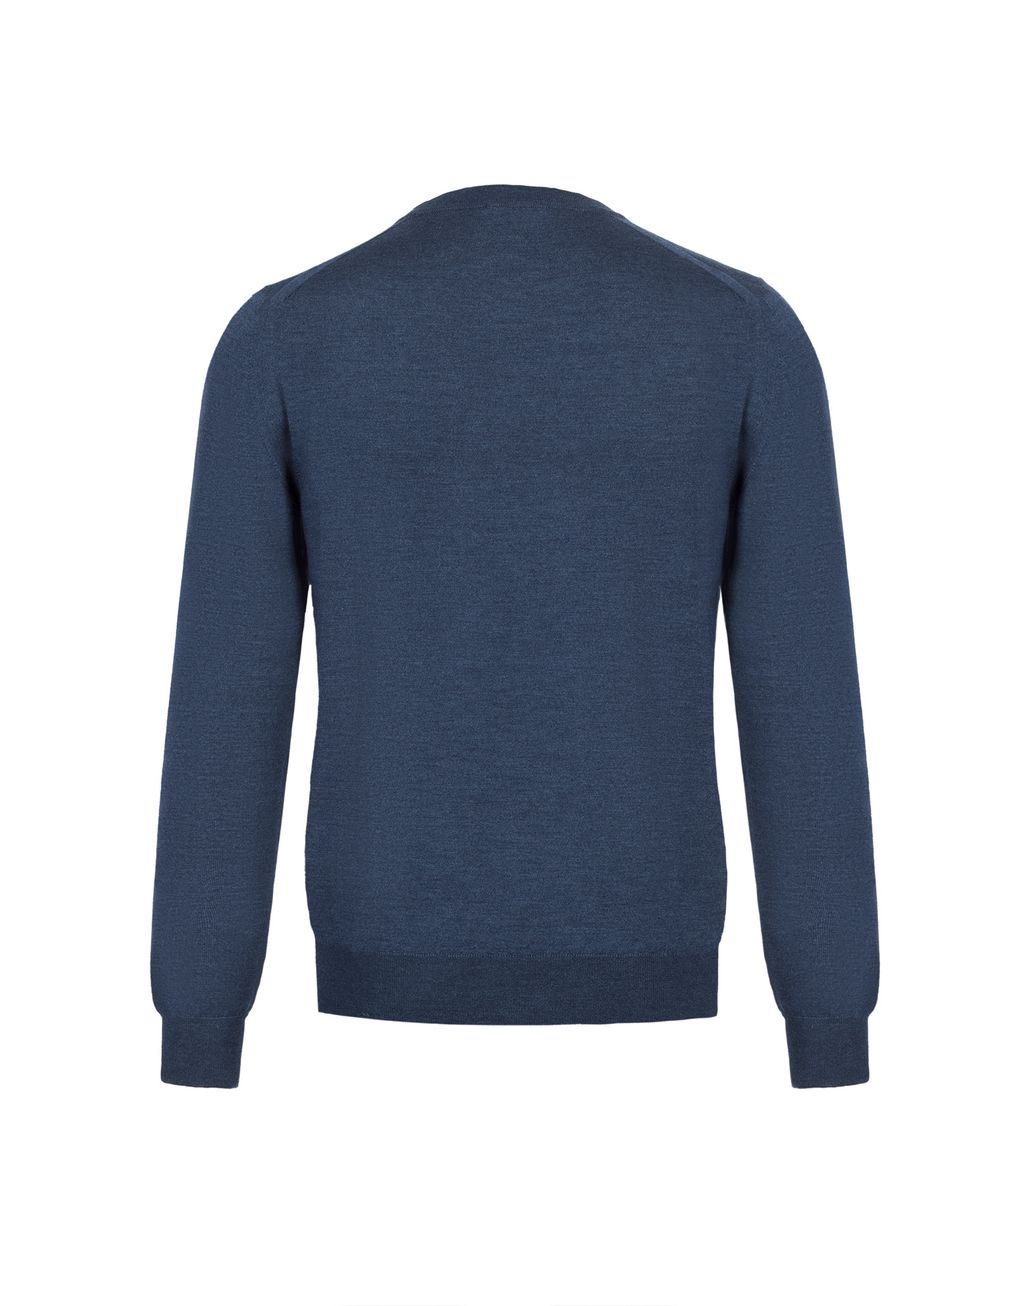 BRIONI Bluette Crew-Neck Sweater Knitwear Man d